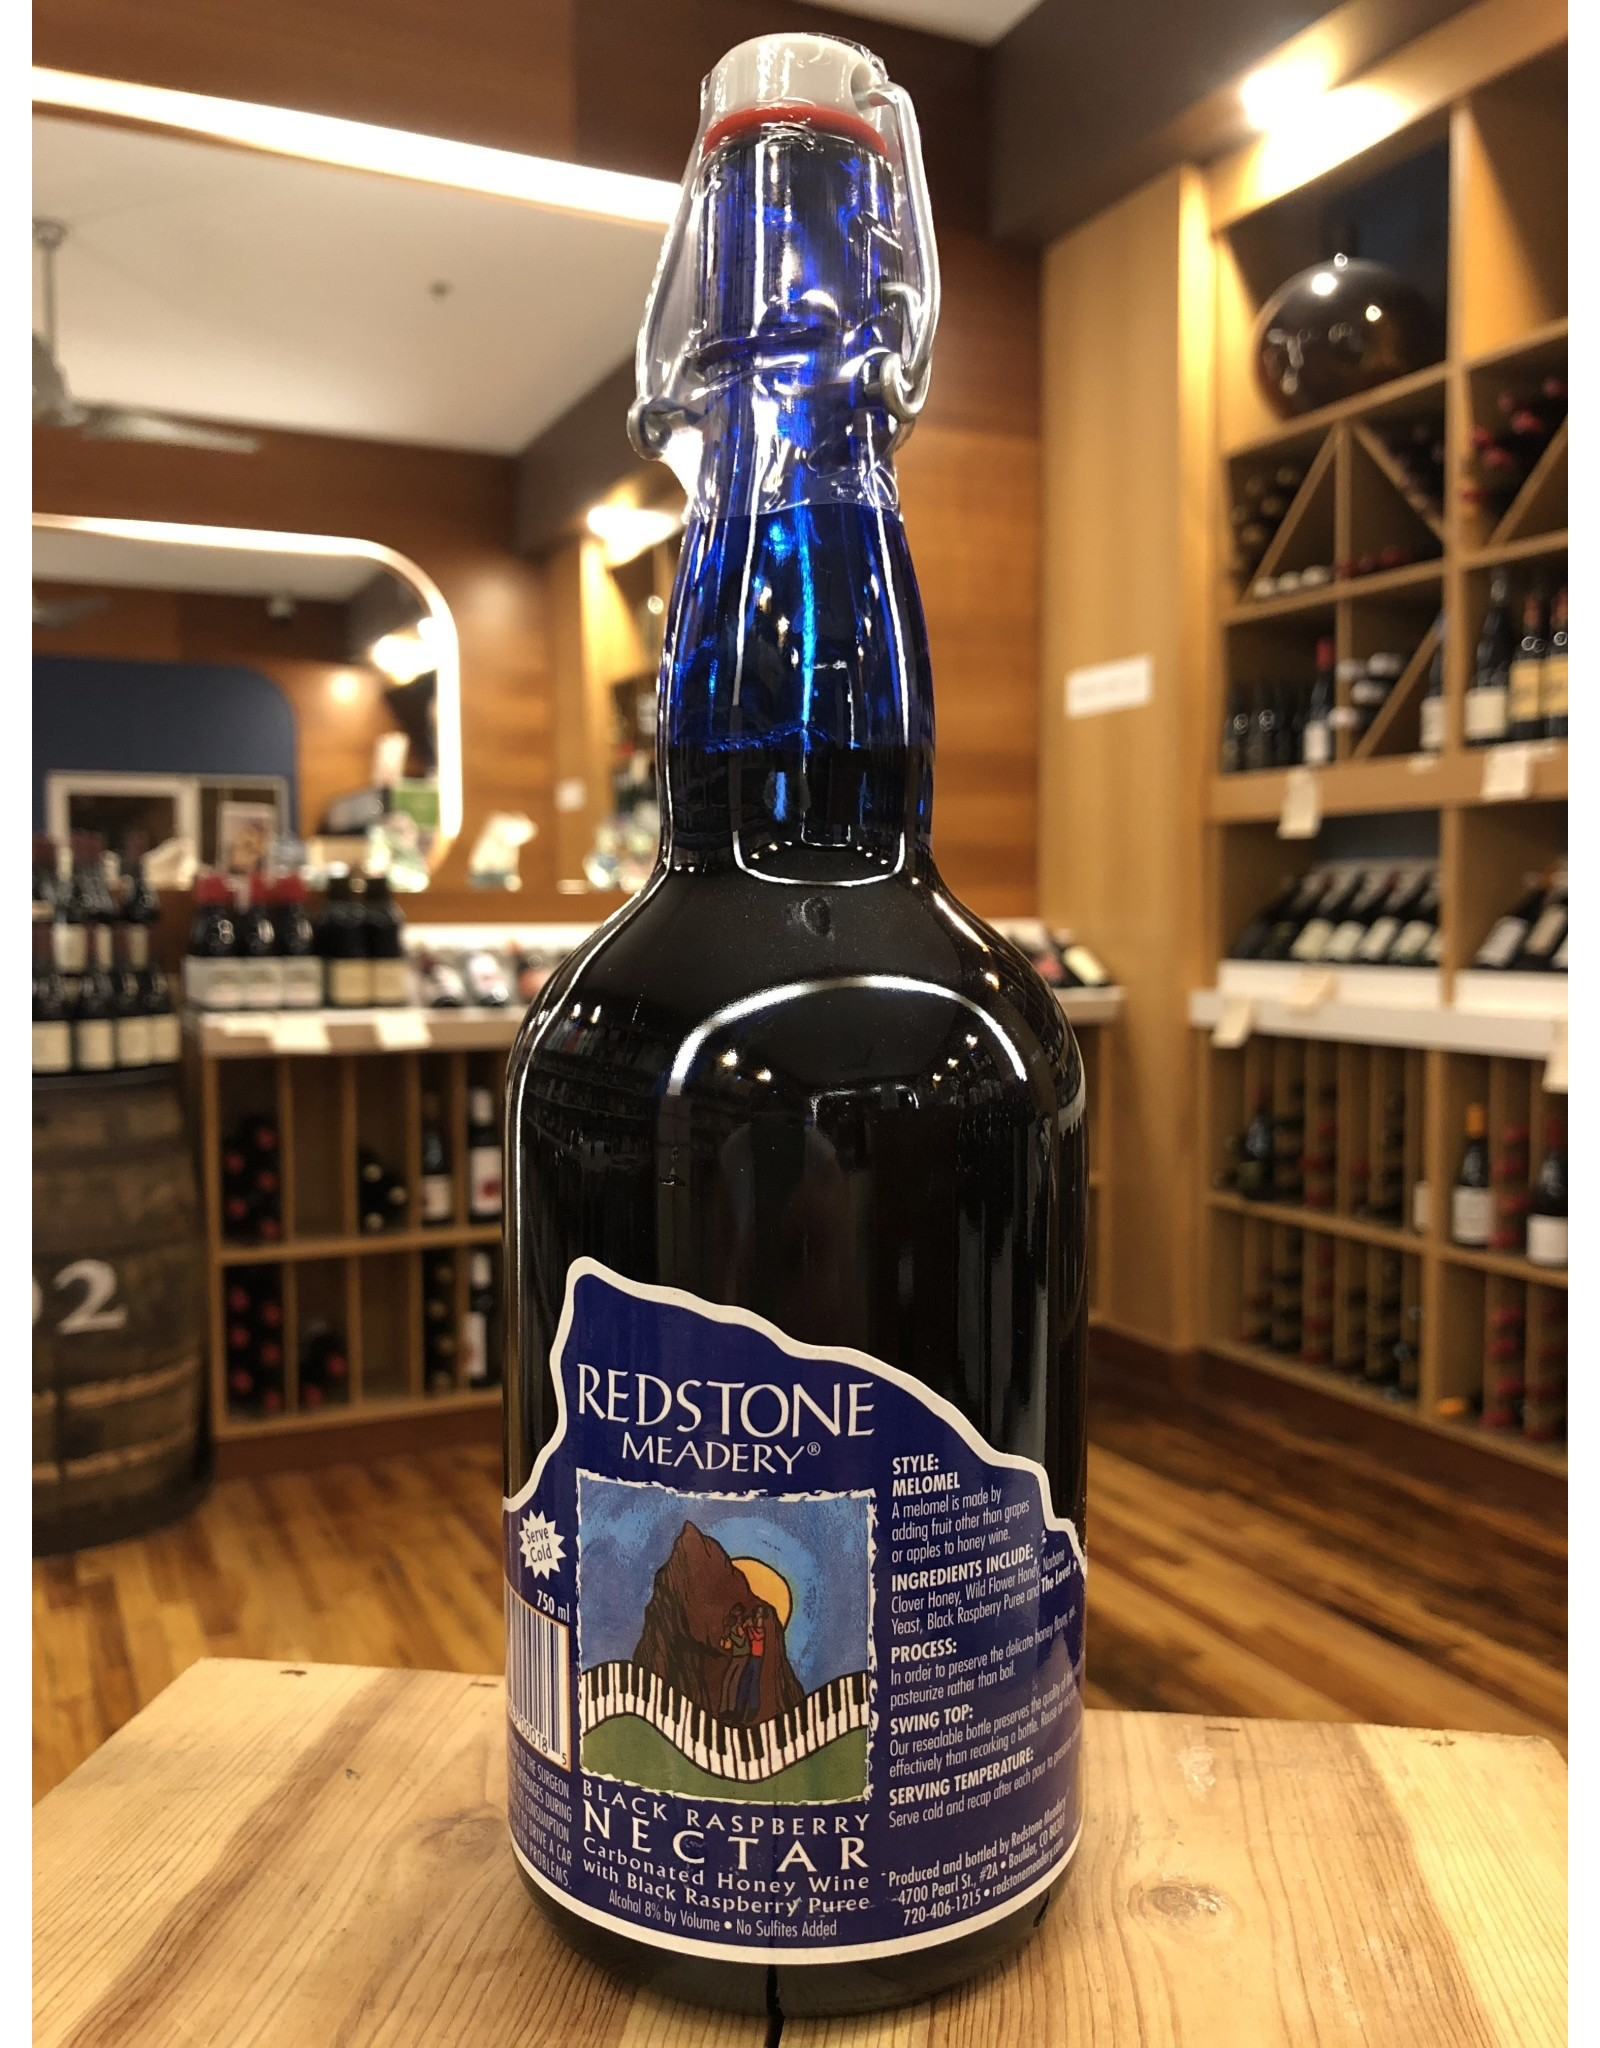 Redstone Black Raspberry Mead - 750 ML